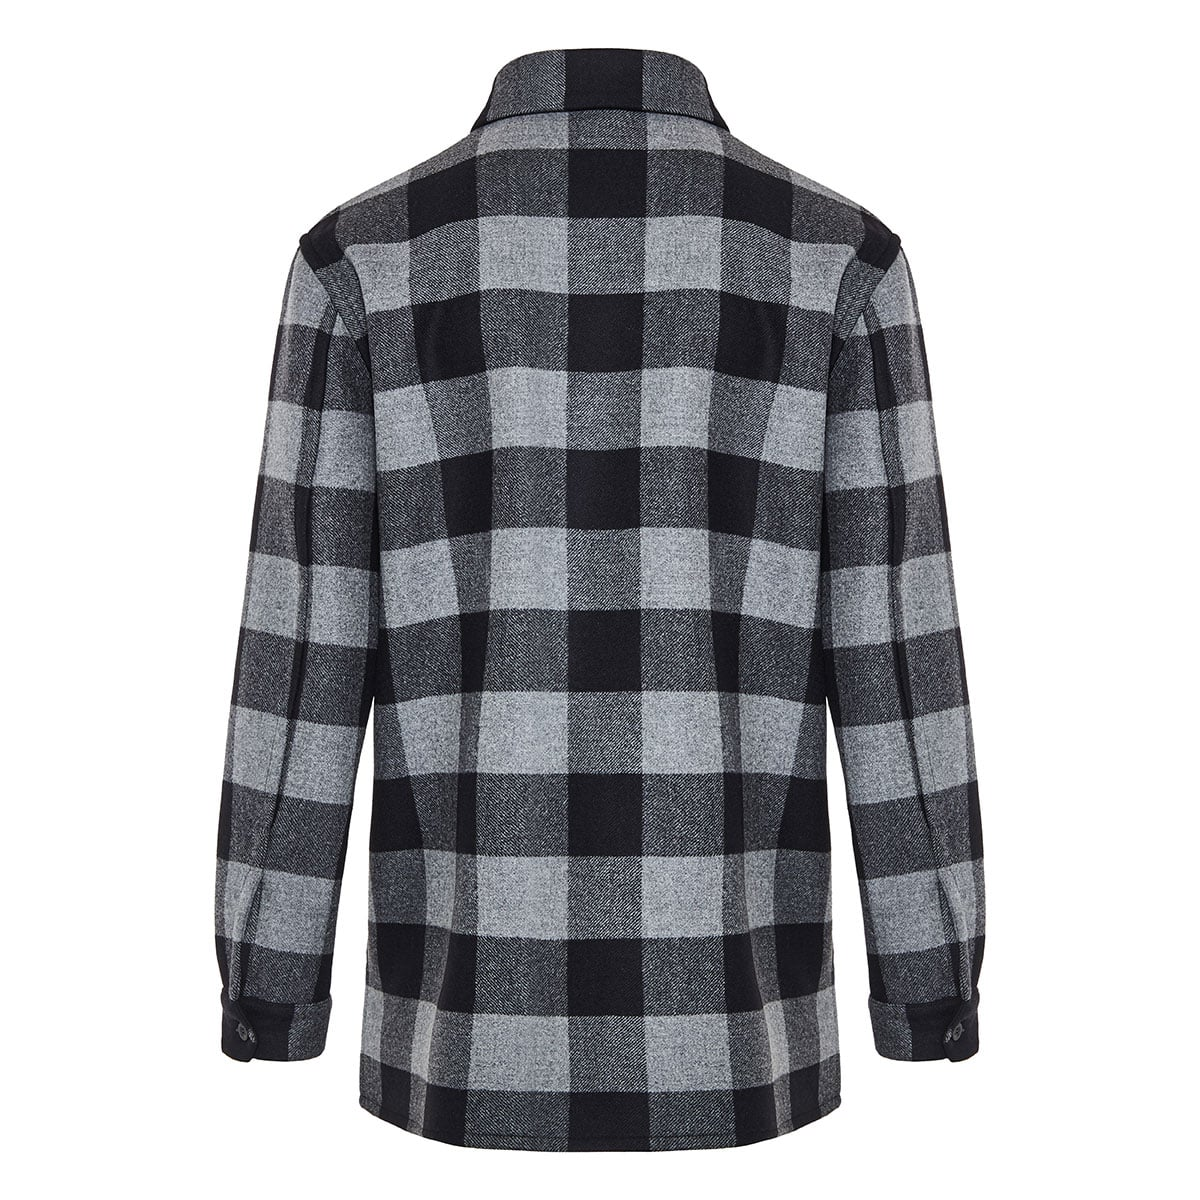 Checked wool overshirt